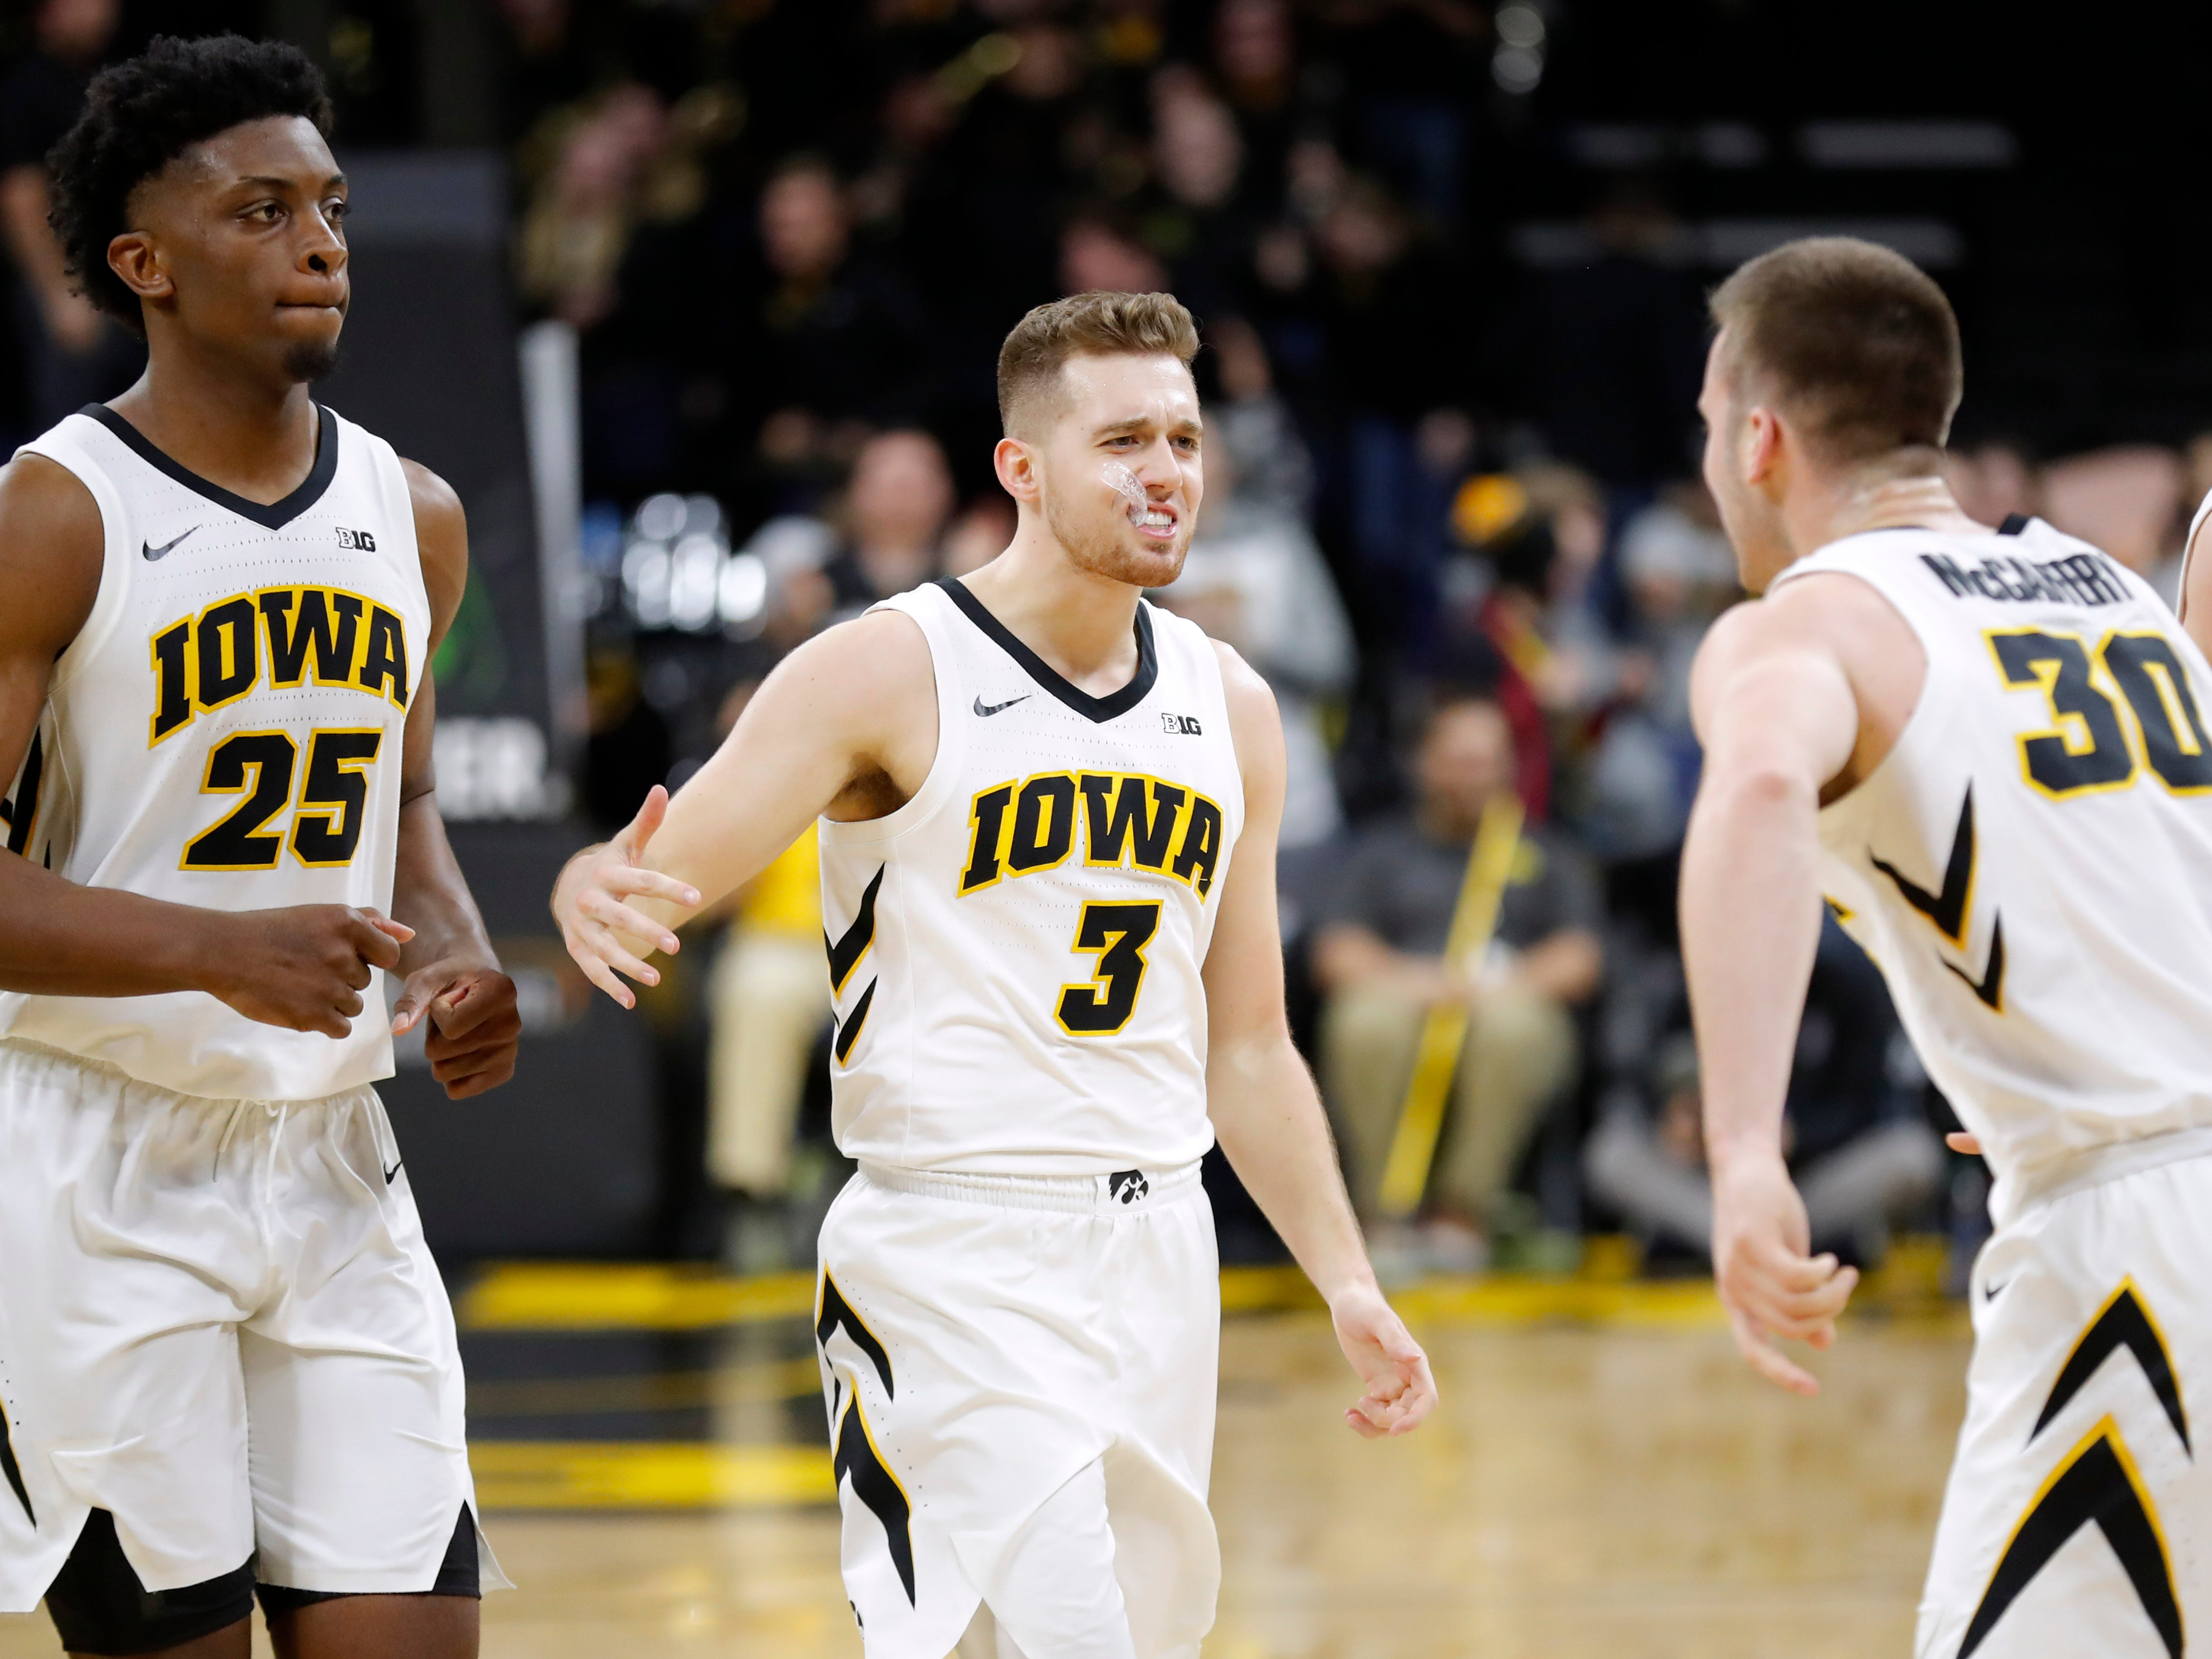 Iowa guard Jordan Bohannon (3) celebrates with teammates Tyler Cook, left, and Connor McCaffery, right, after an NCAA college basketball game against Northwestern, Sunday, Feb. 10, 2019, in Iowa City, Iowa. Bohannon made a three-point basket at the end of the game as Iowa won 80-79. (AP Photo/Charlie Neibergall)